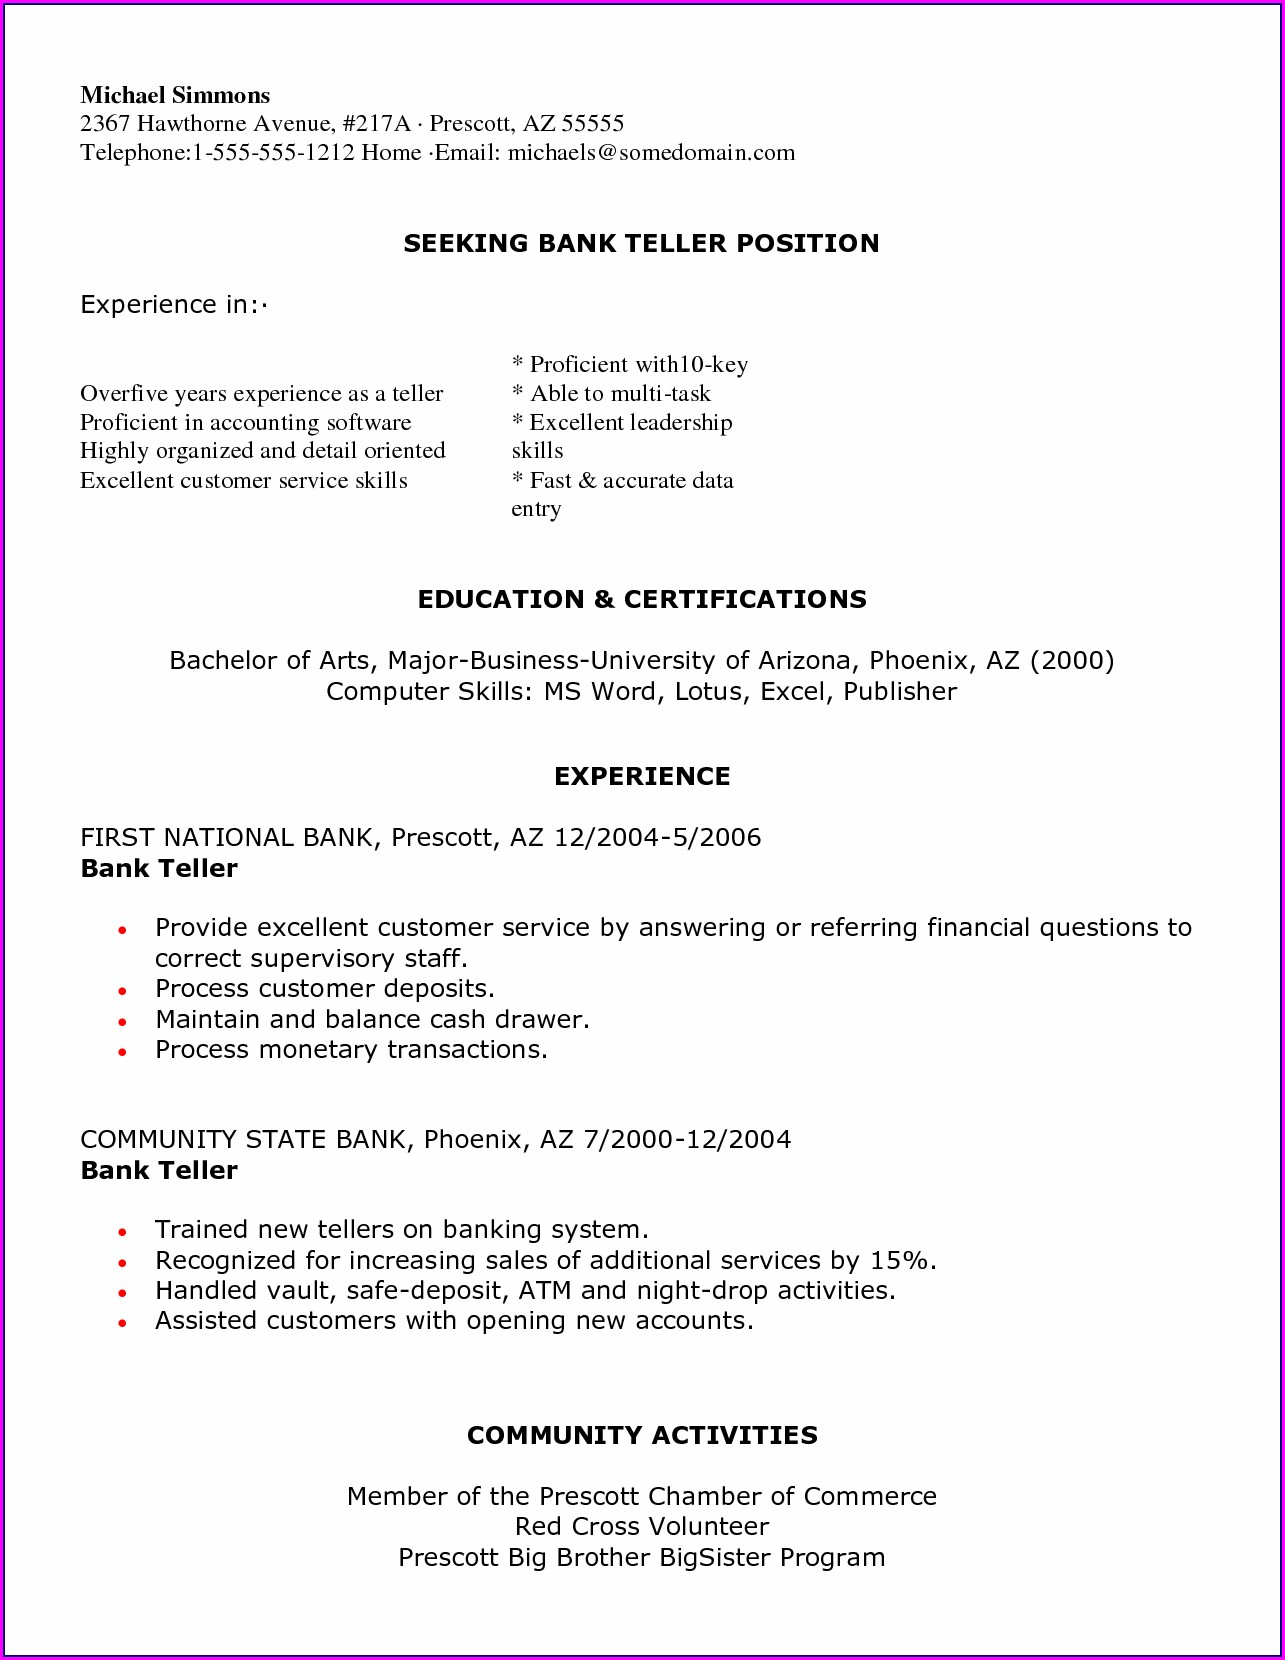 Resume Sample For Teller Position